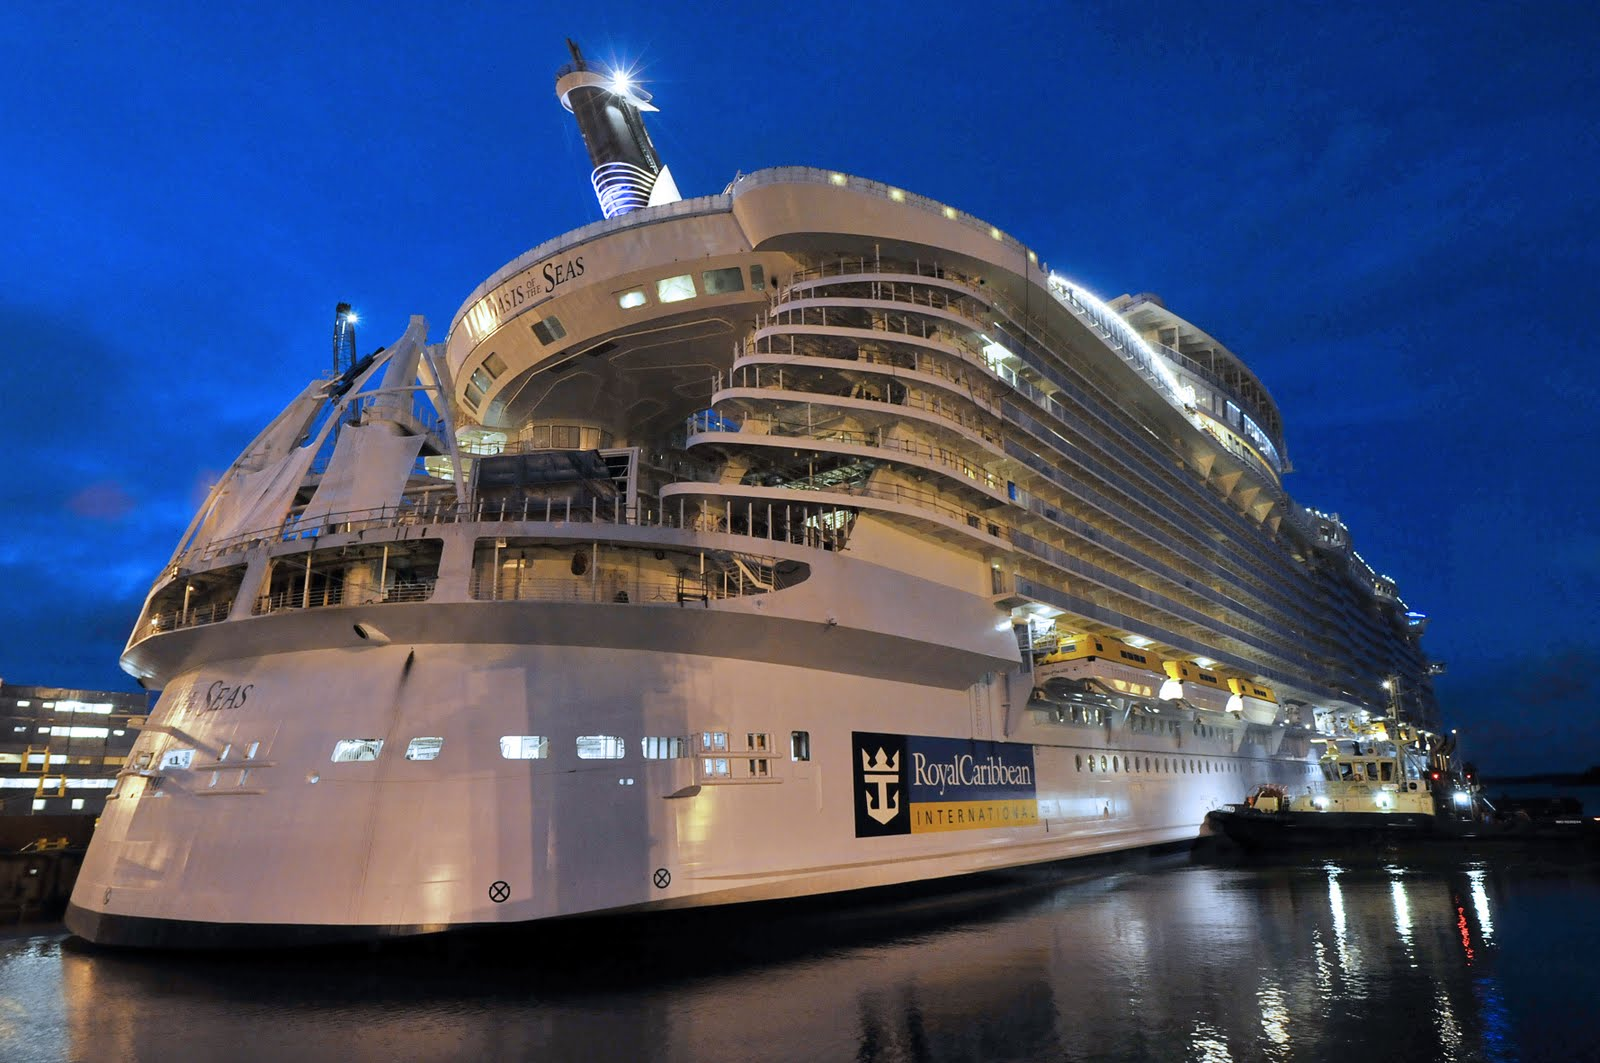 Biggest Cruise Ship Of The World Detlandcom - Biggest and best cruise ships